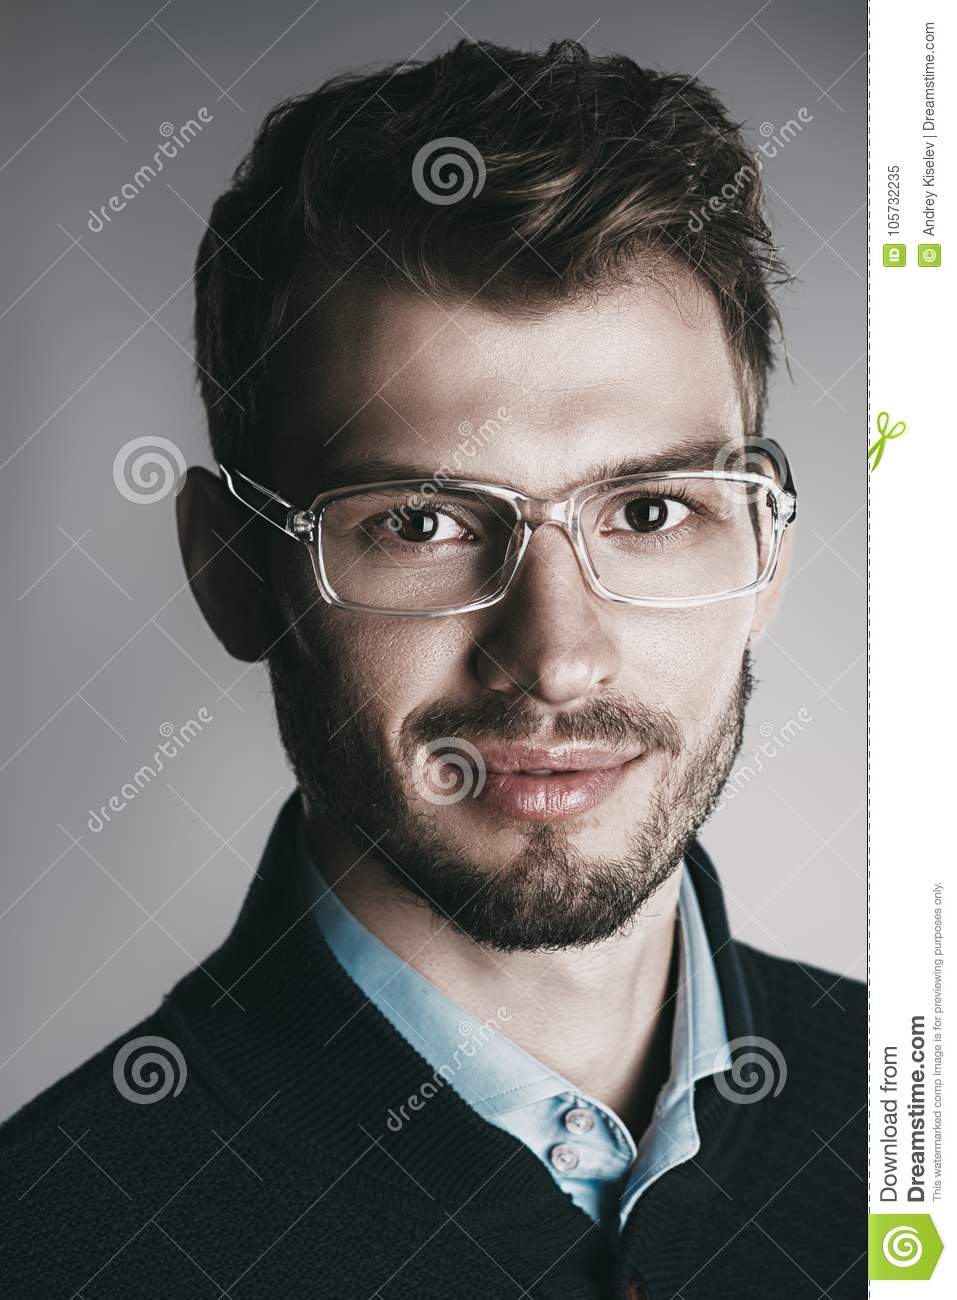 c3ab2724a01d Elegant man in glasses. Optics style for men. Handsome businessman in  spectacles. Male beauty, fashion.